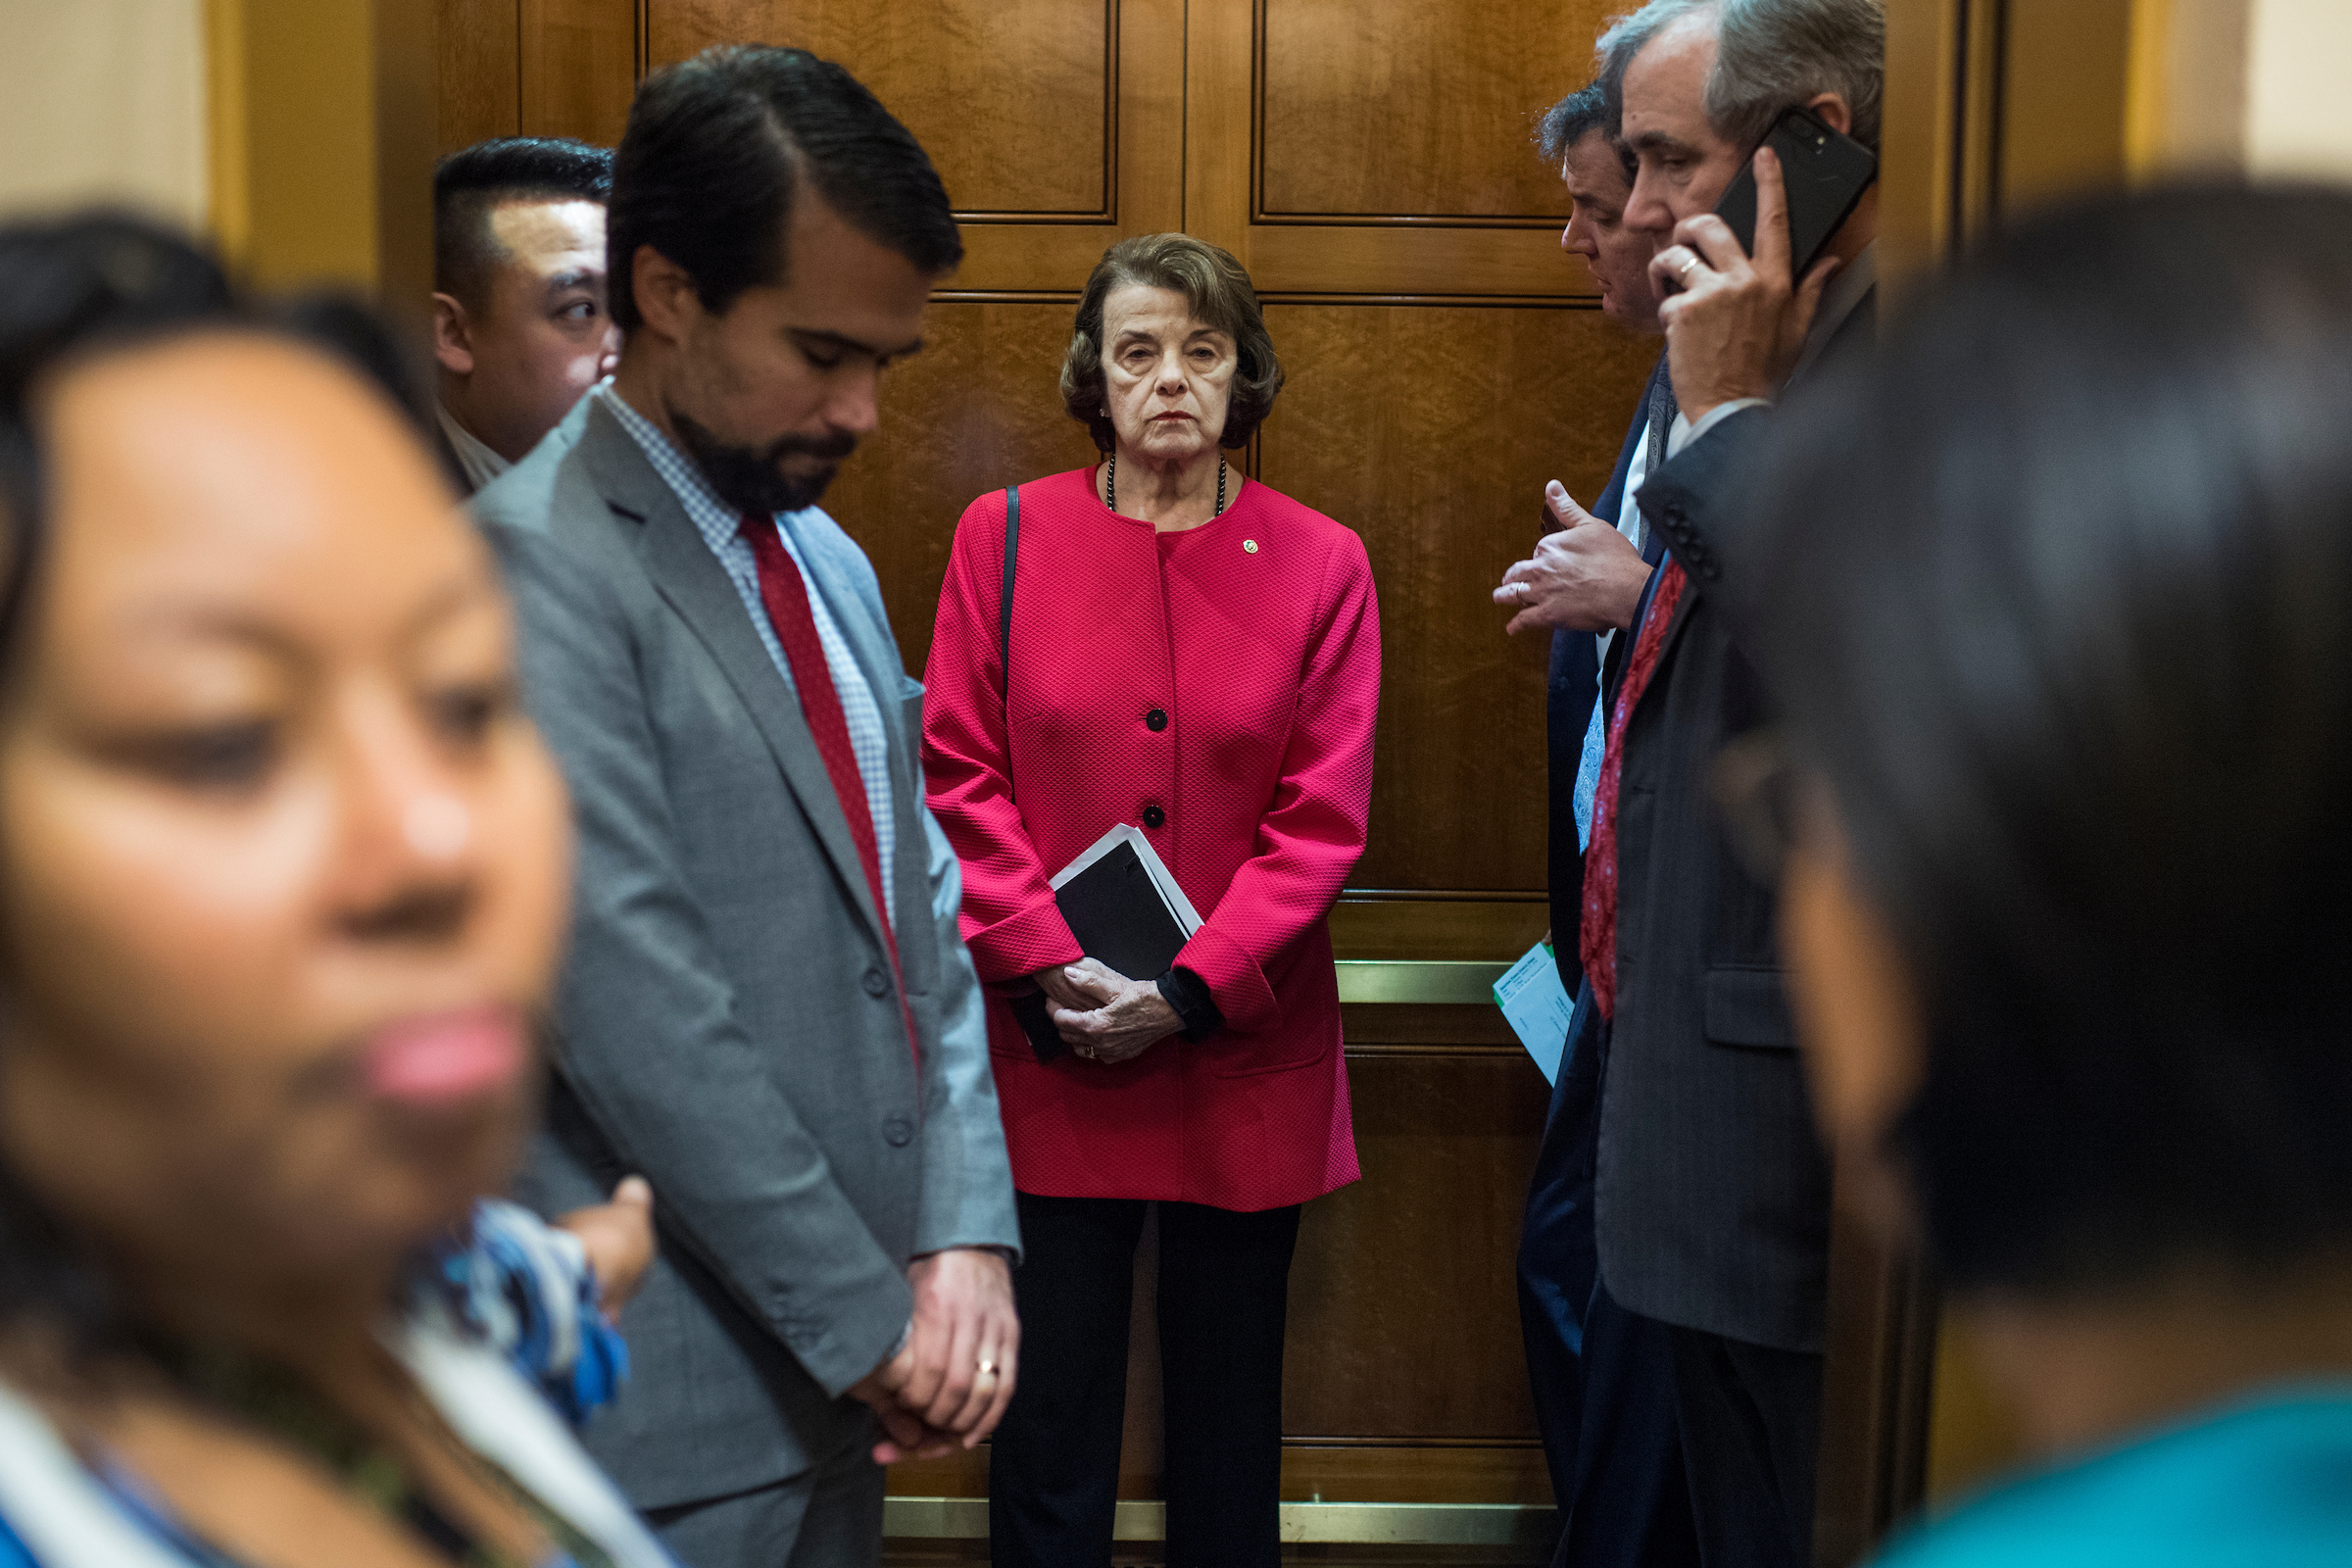 Sen. Dianne Feinstein, D-Calif., makes her way to a meeting in the Capitol as Congress works to end the government shutdown on Monday. (Tom Williams/CQ Roll Call)